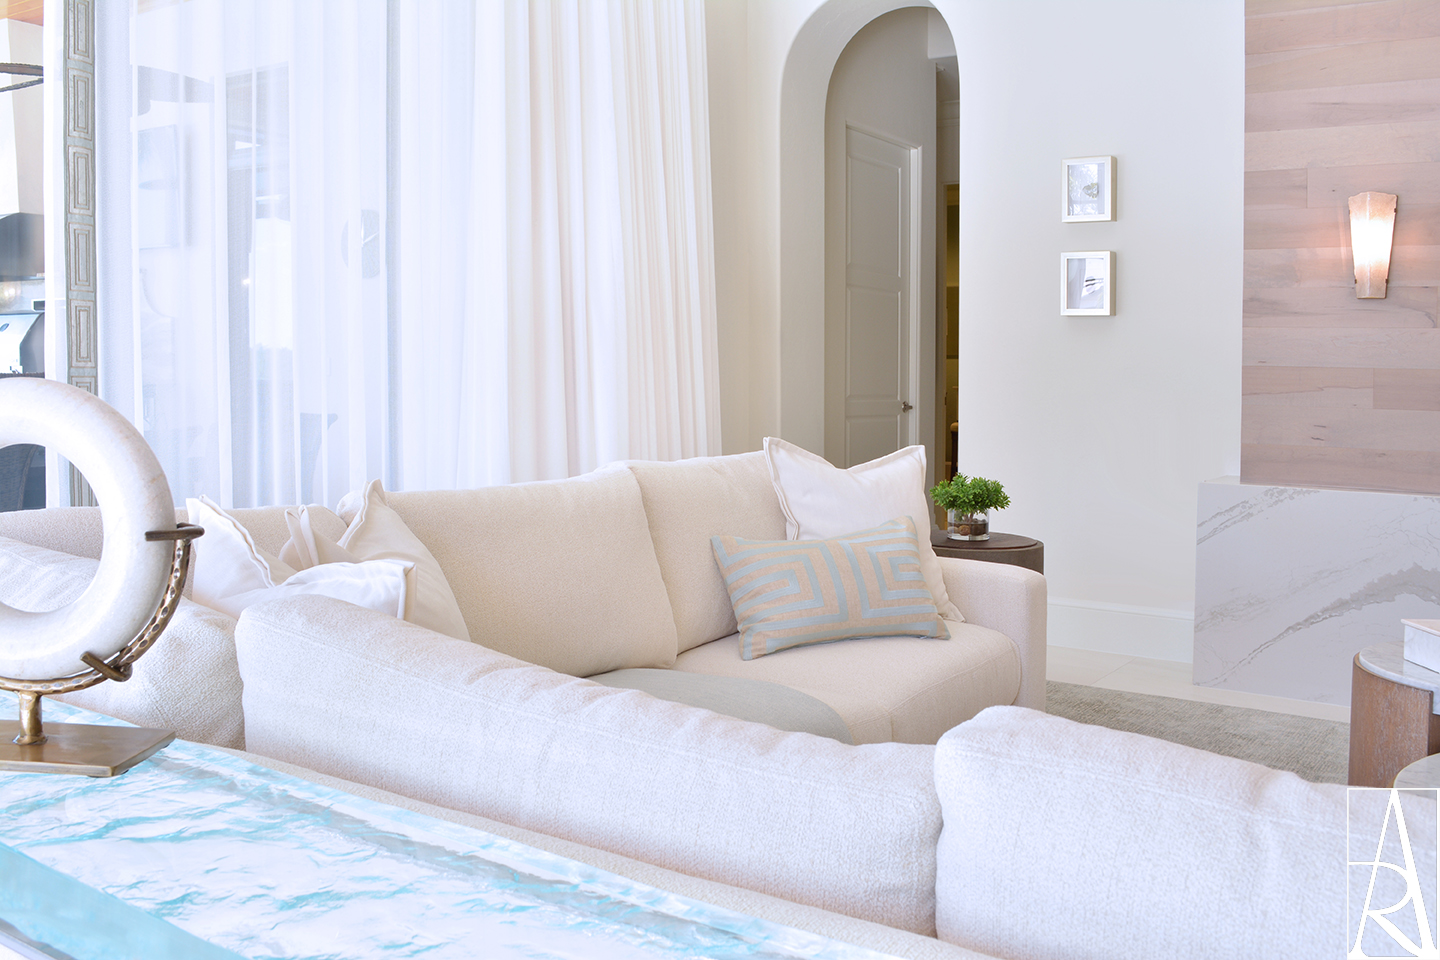 A contemporary living room interior design with linen sofa and a textured glass table